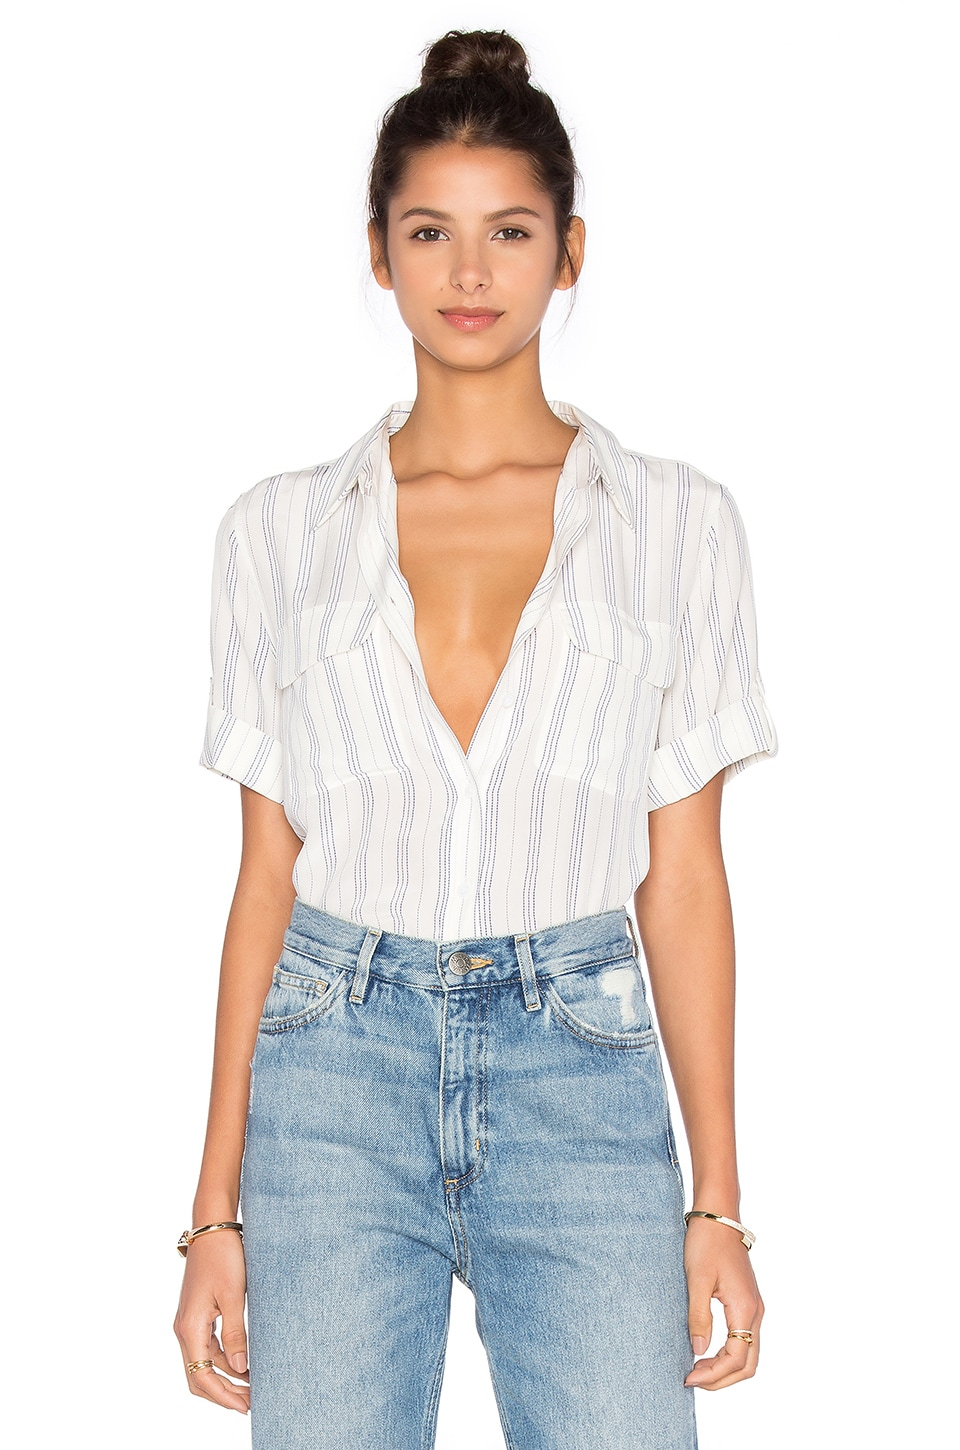 Equipment Short Sleeve Slim Signature Stripe Blouse in Bright White & Biro Blue